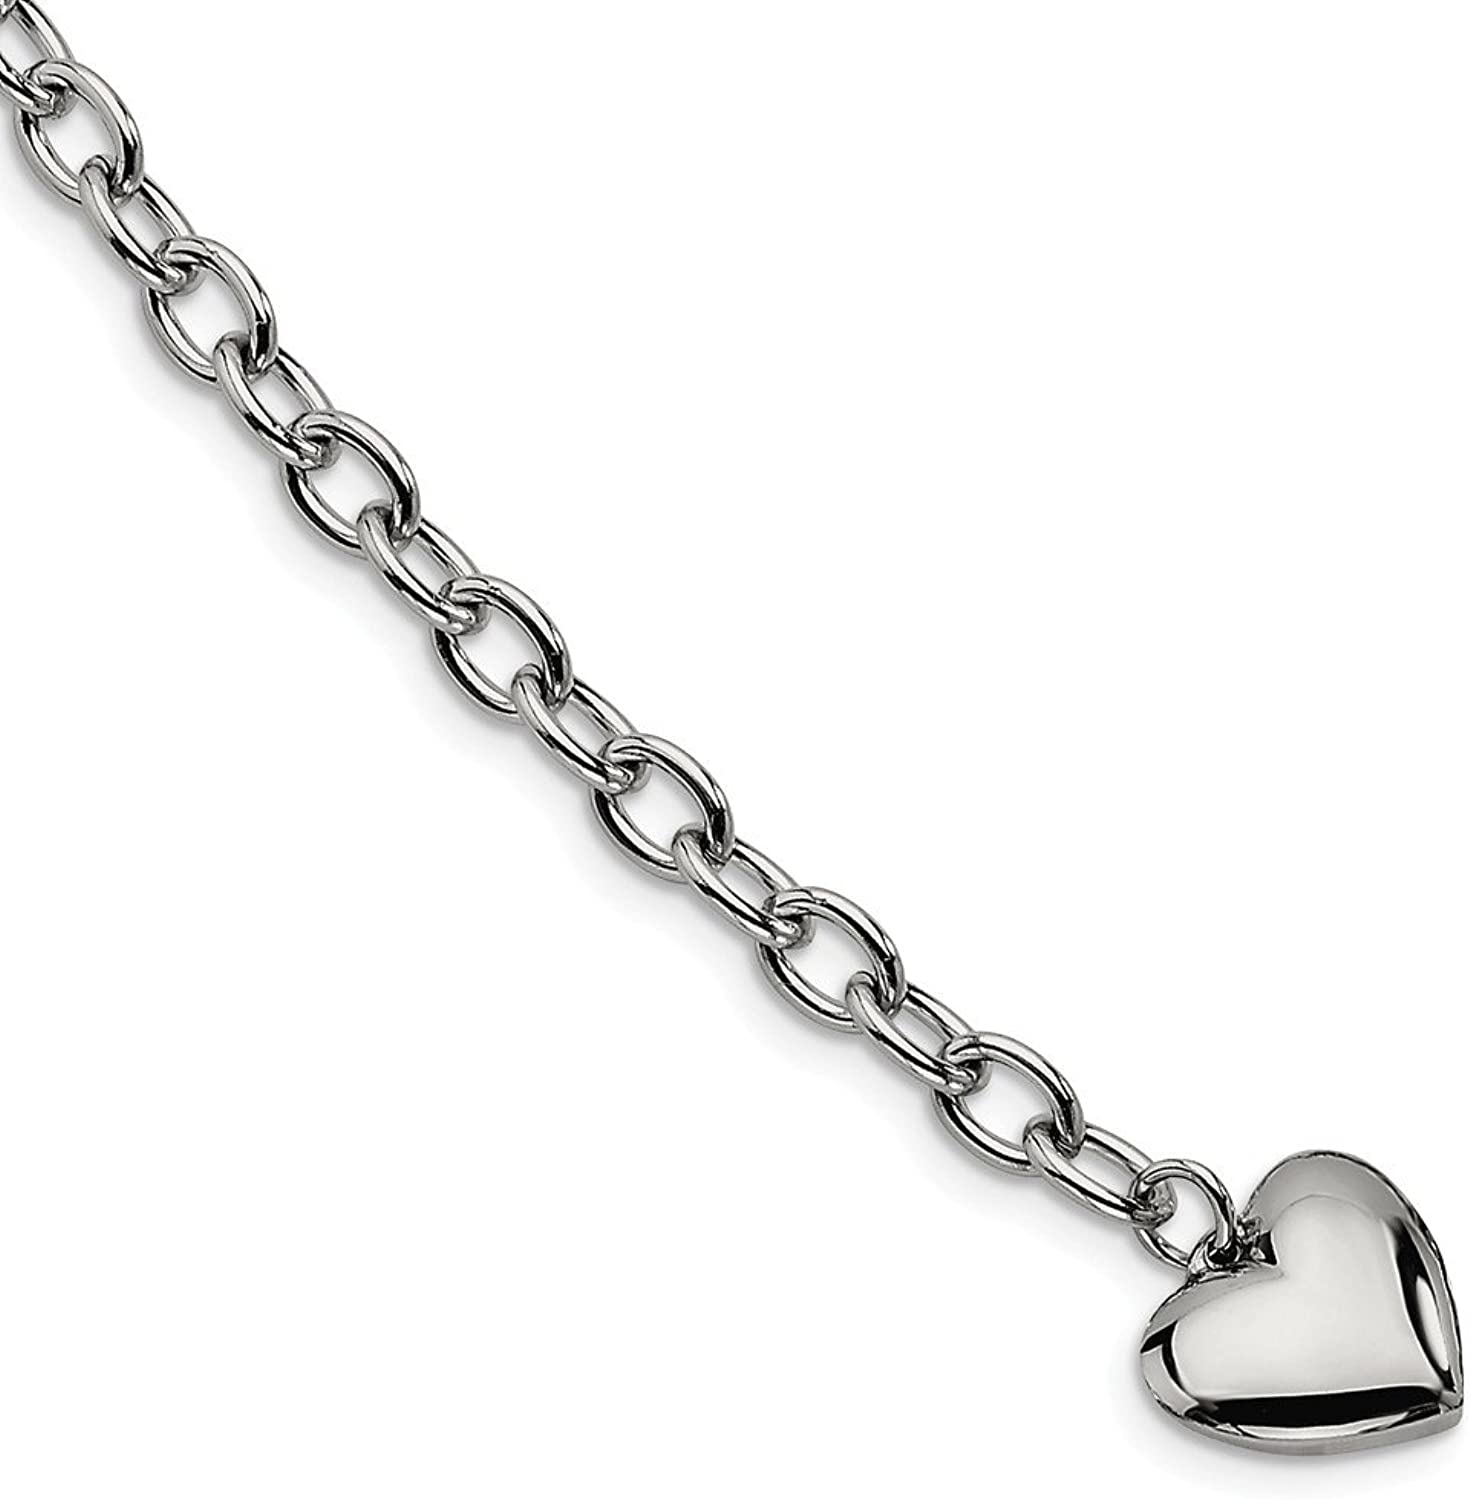 Beautiful Stainless Steel Polished Open Link w Heart 8.5in Bracelet